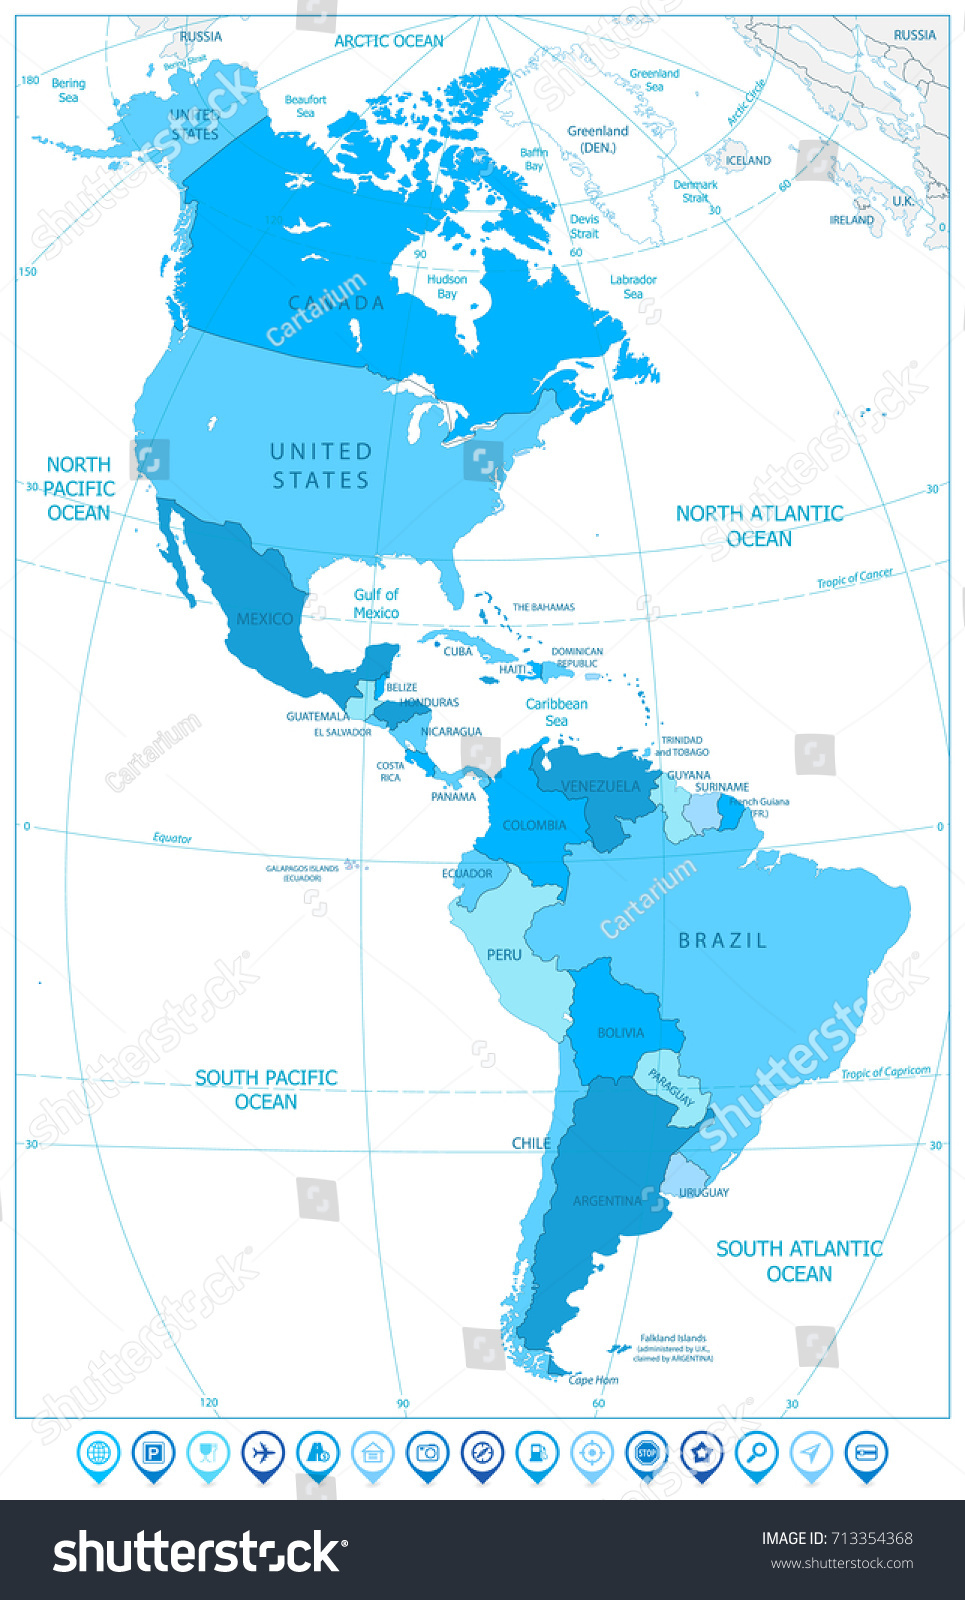 North south america map map markers stock vector 713354368 north and south america map with map markers in colors of blue vector illustration sciox Gallery